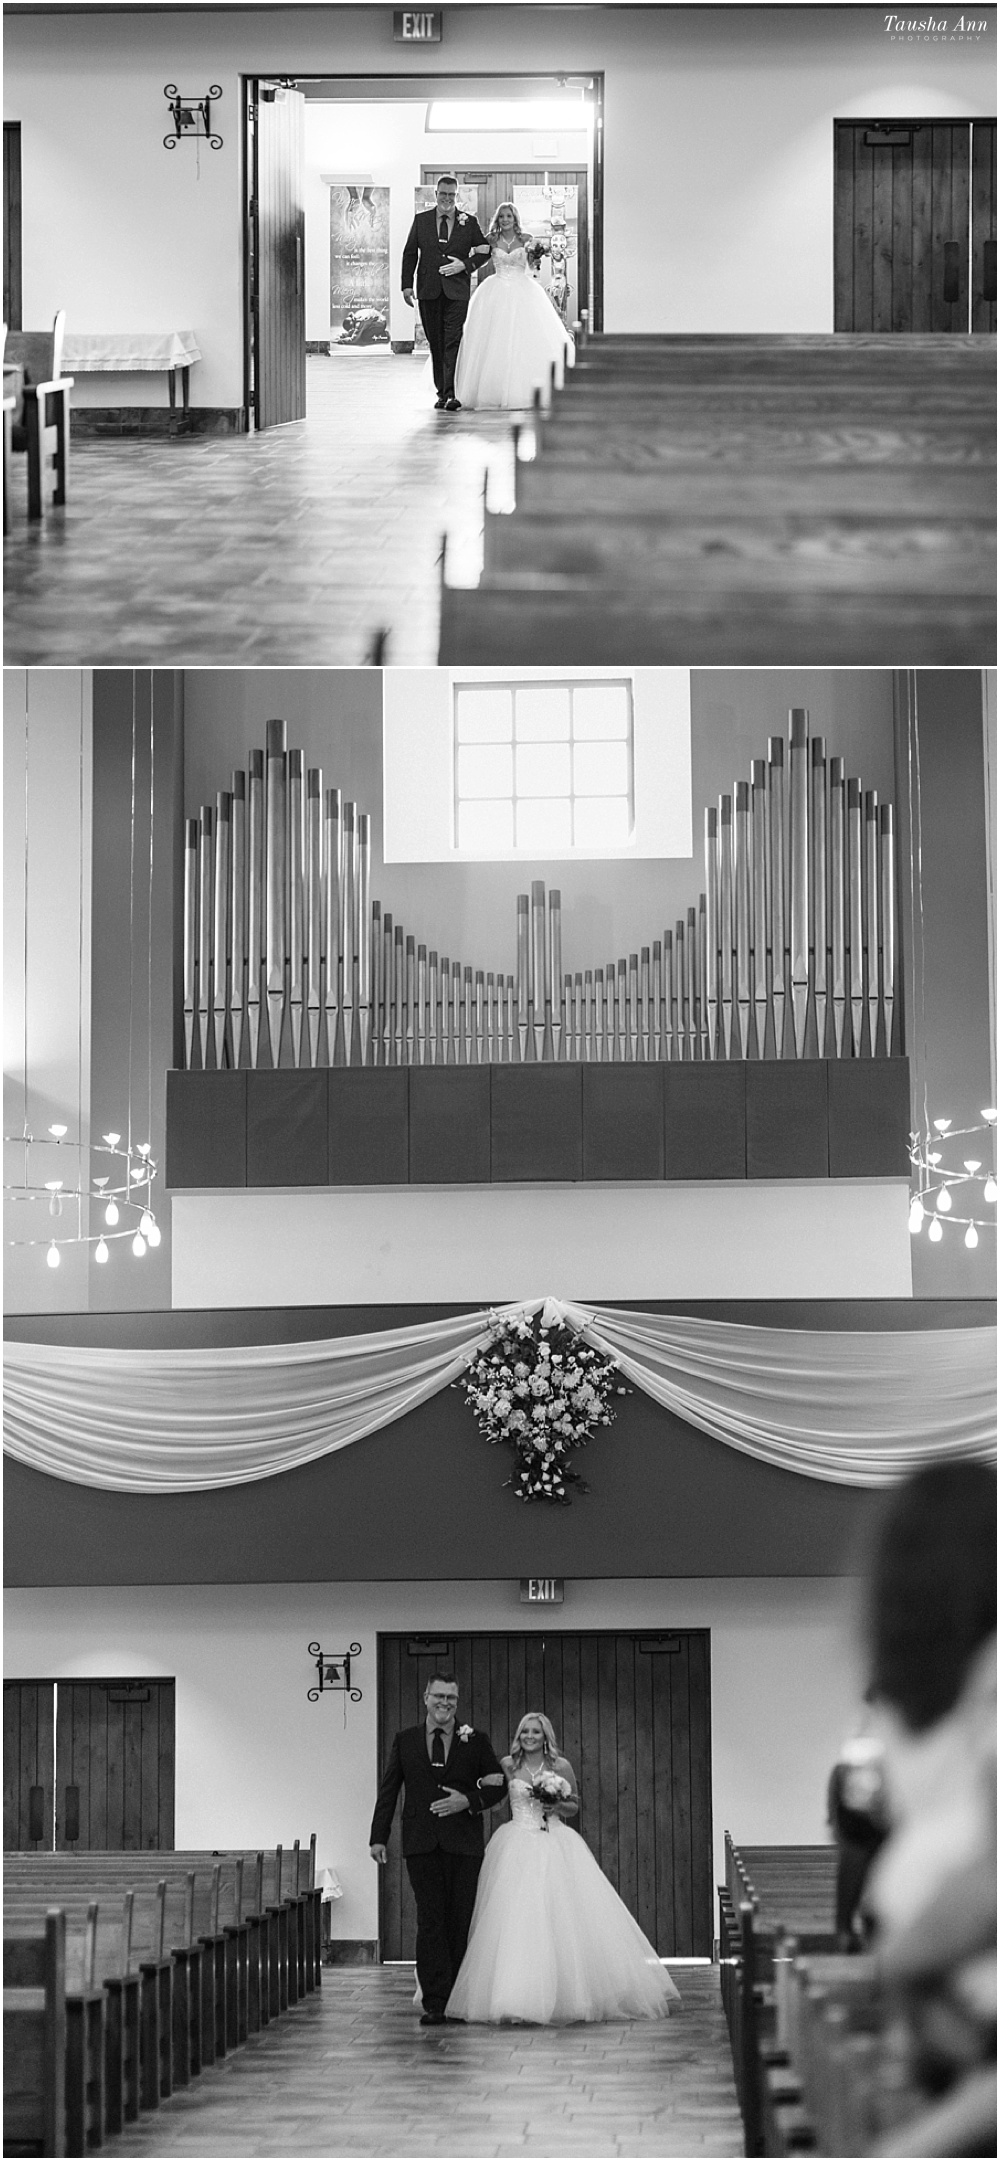 Nashville-Wedding-Photographer-Arizona-Wedding-Aquinas-Catholic-Avondale-Phoenix-Tausha-Ann-Photography-Best-Nashville-Wedding-Photographer-Franklin-Tennessee_0155